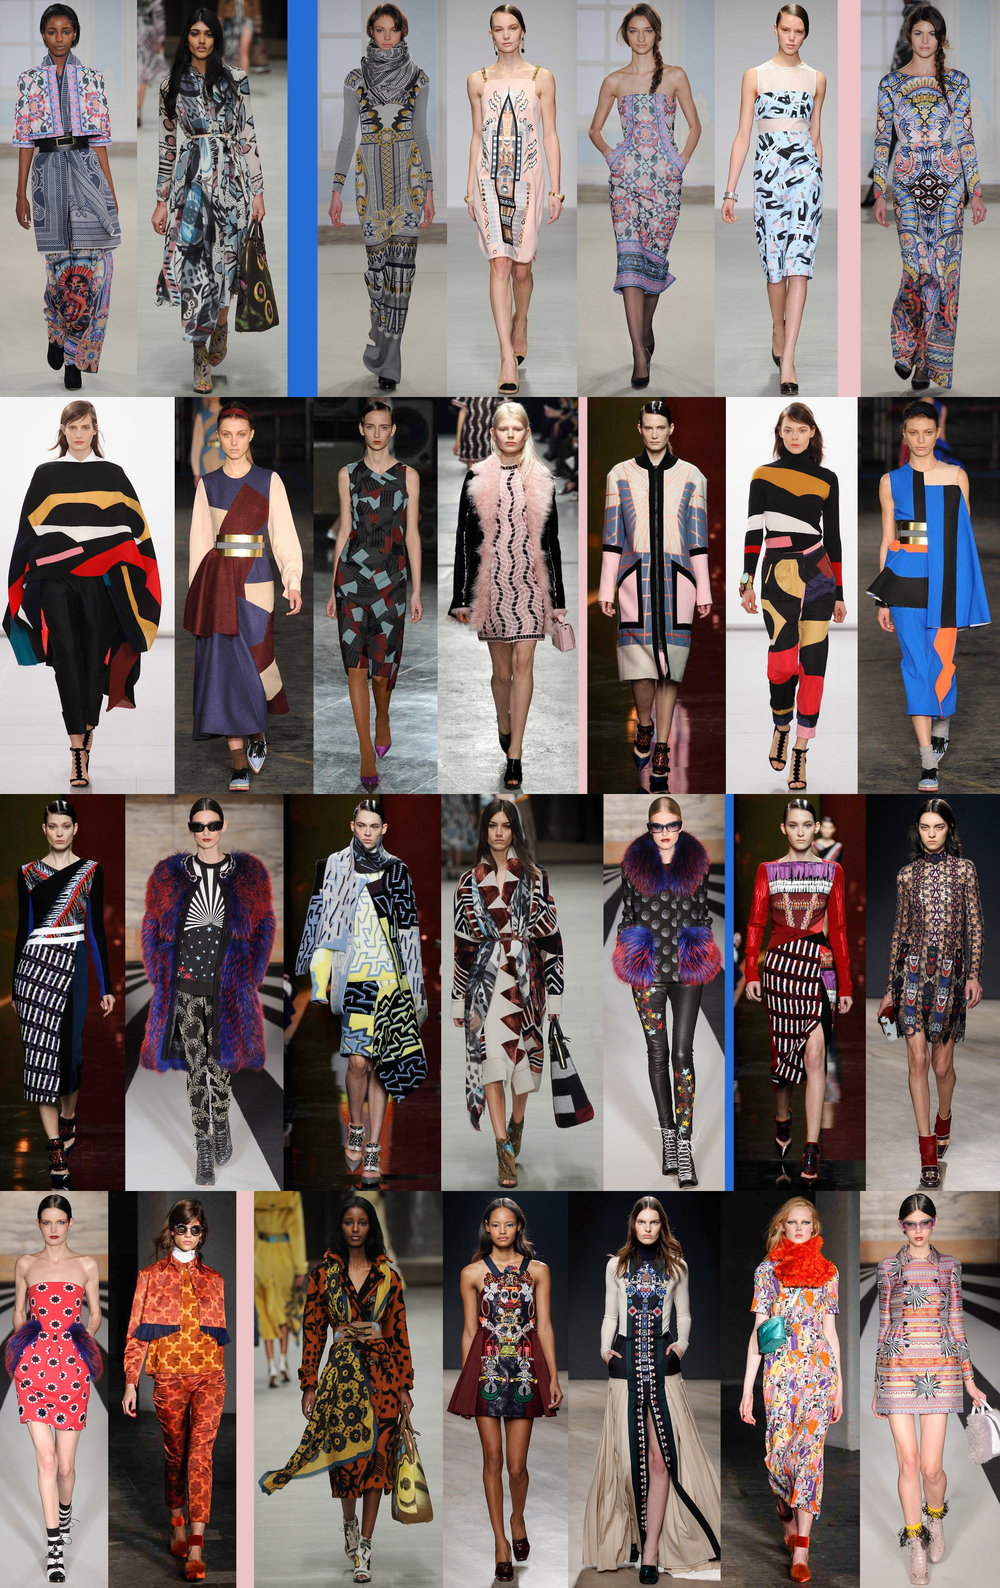 Liz Nehdi's top looks from London Fashion Week A/W 2014